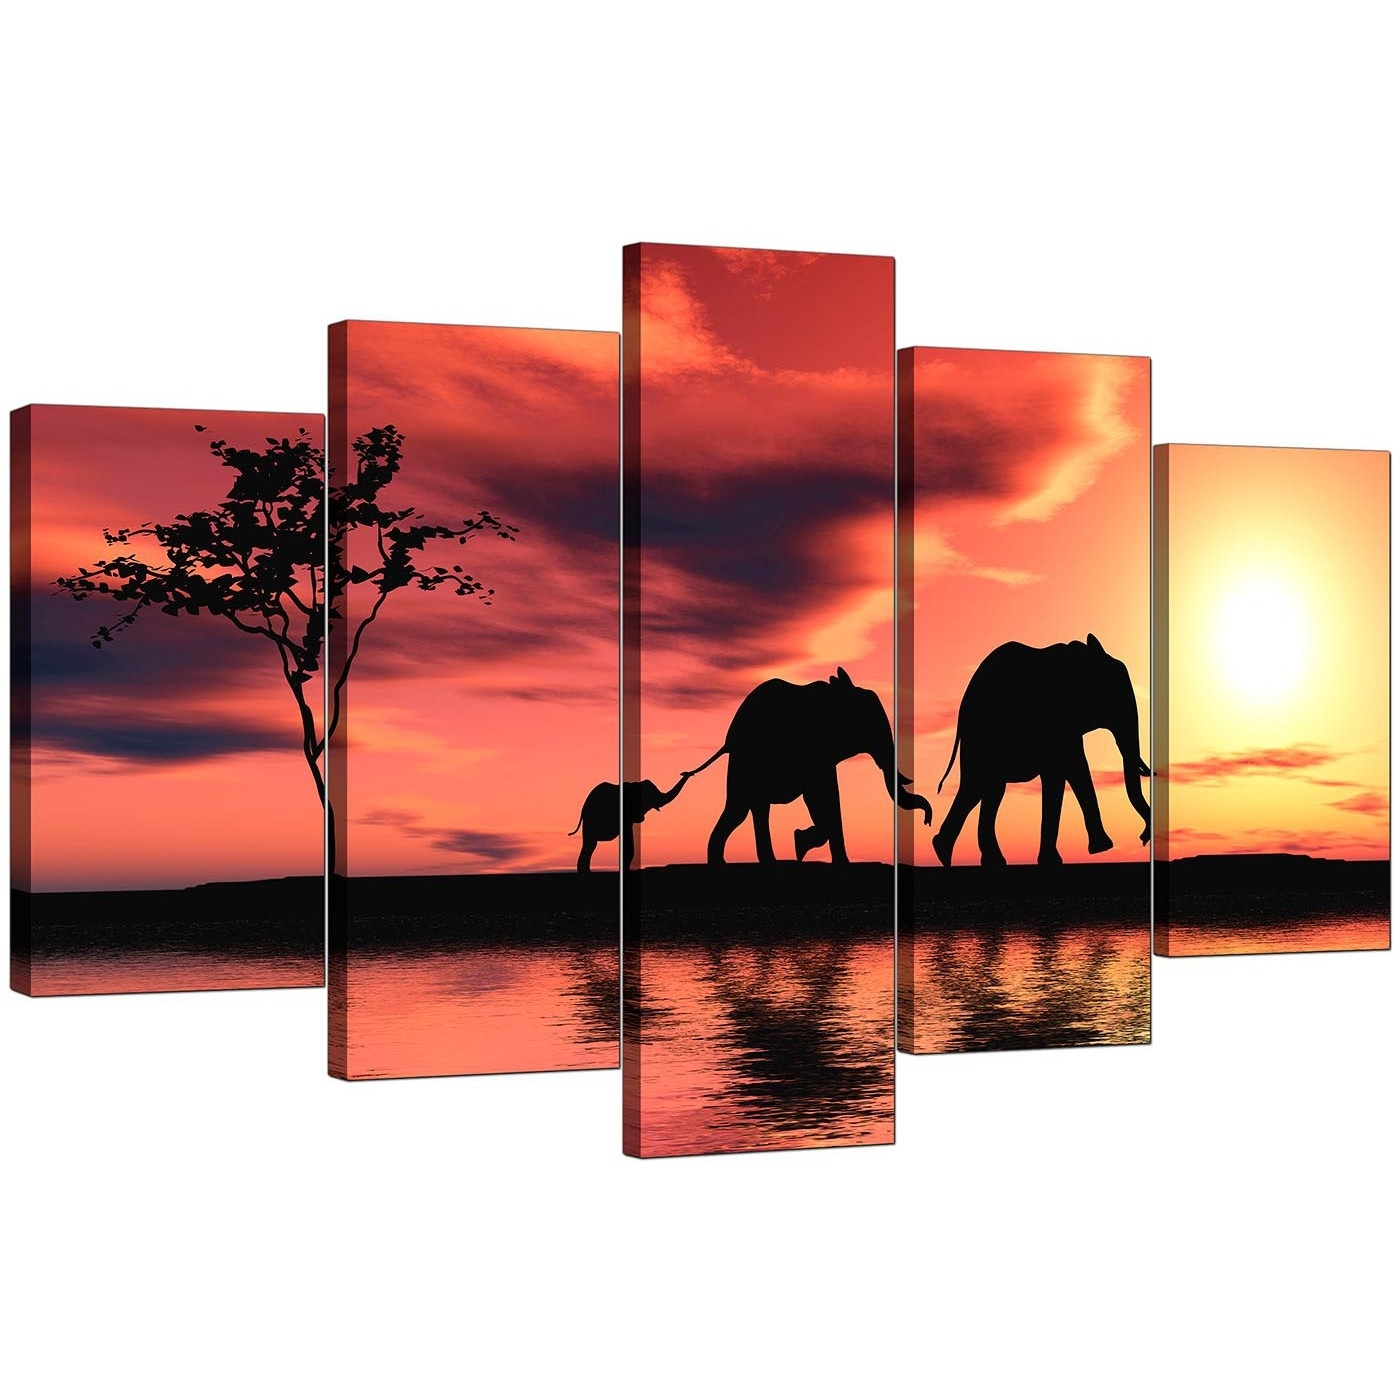 Extra Large Elephants Canvas Prints 5 Piece In Orange Pertaining To Best And Newest Elephant Canvas Wall Art (Gallery 17 of 20)